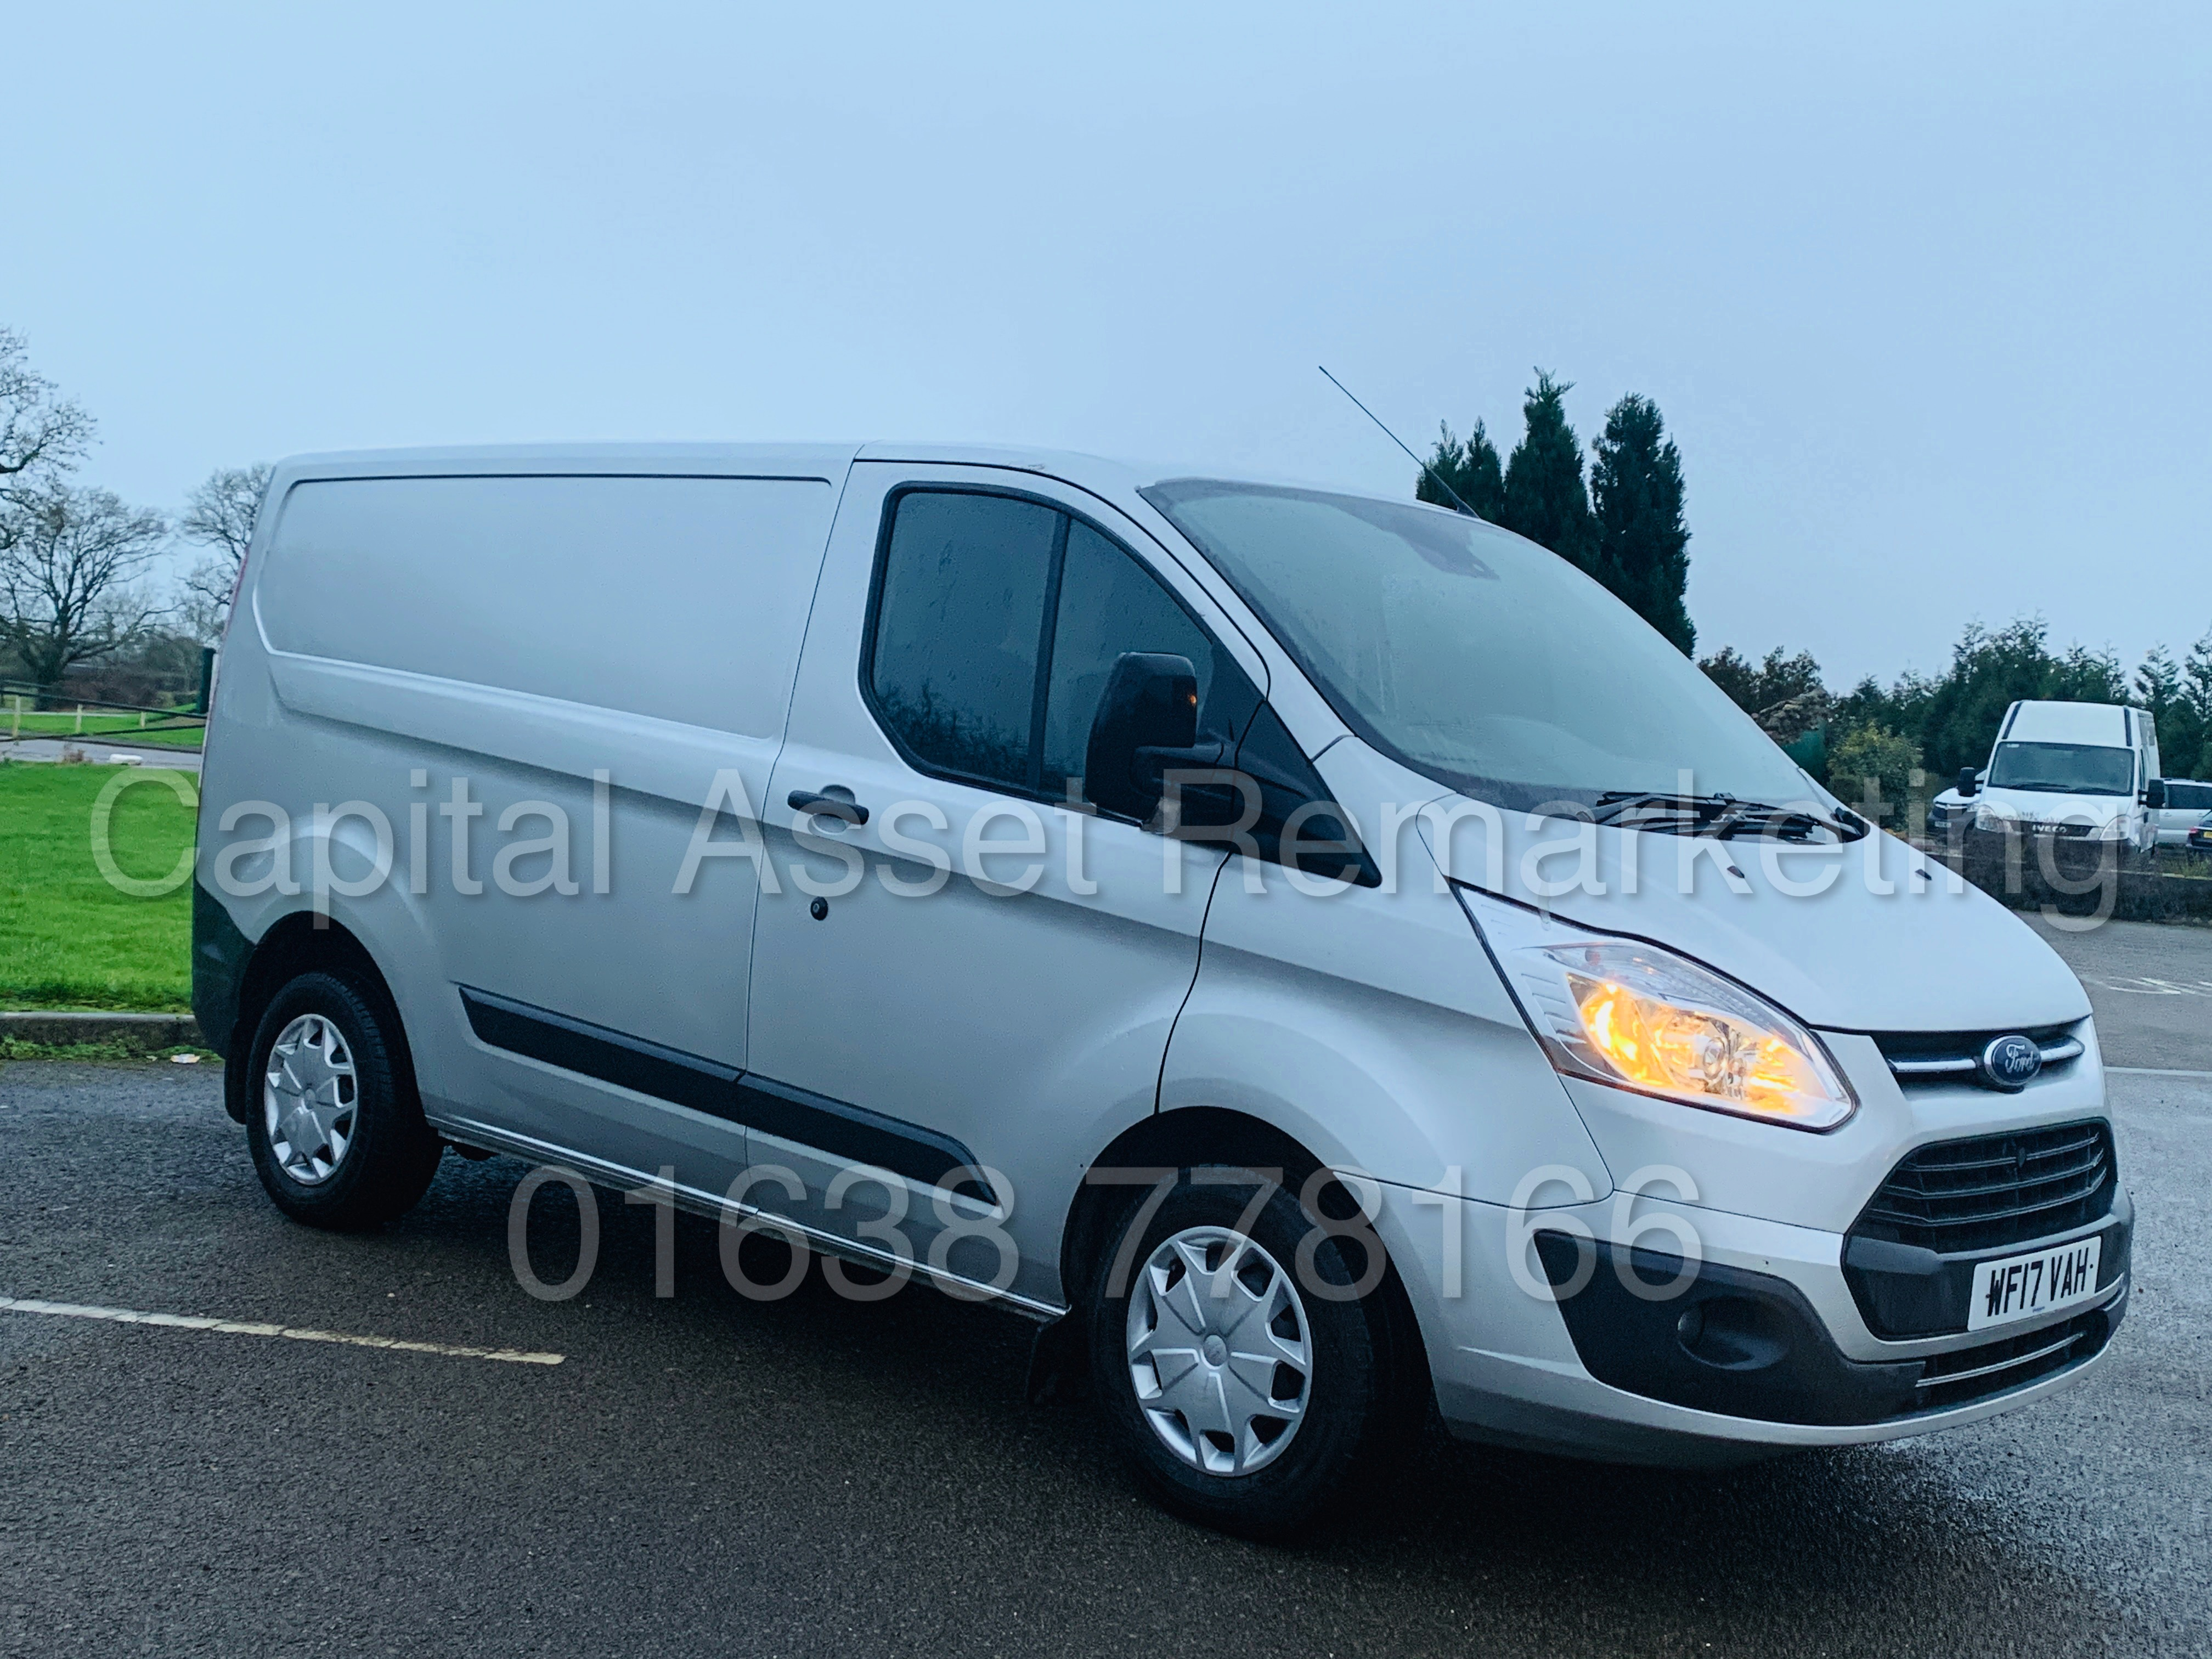 (On Sale) FORD TRANSIT *TREND* 290 SWB (2017 - EURO 6 / AD-BLUE) '2.0 TDCI - 130 BHP - 6 SPEED' - Image 2 of 41